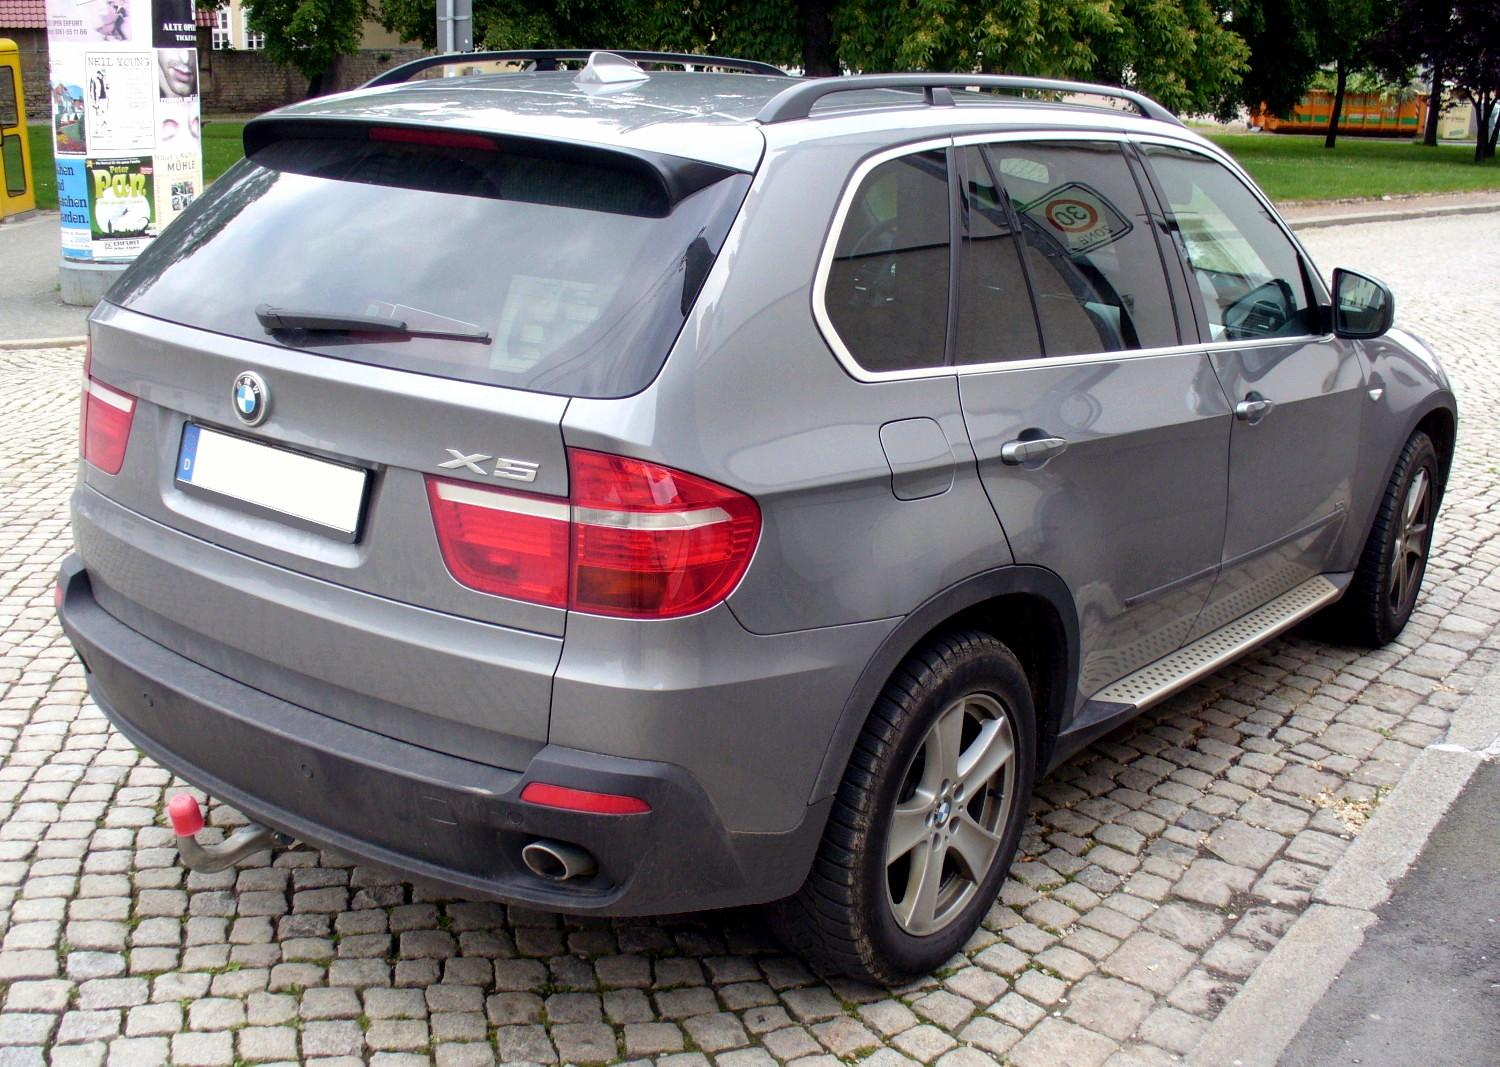 2009 Bmw X5 (e70) - pictures, information and specs - Auto ...